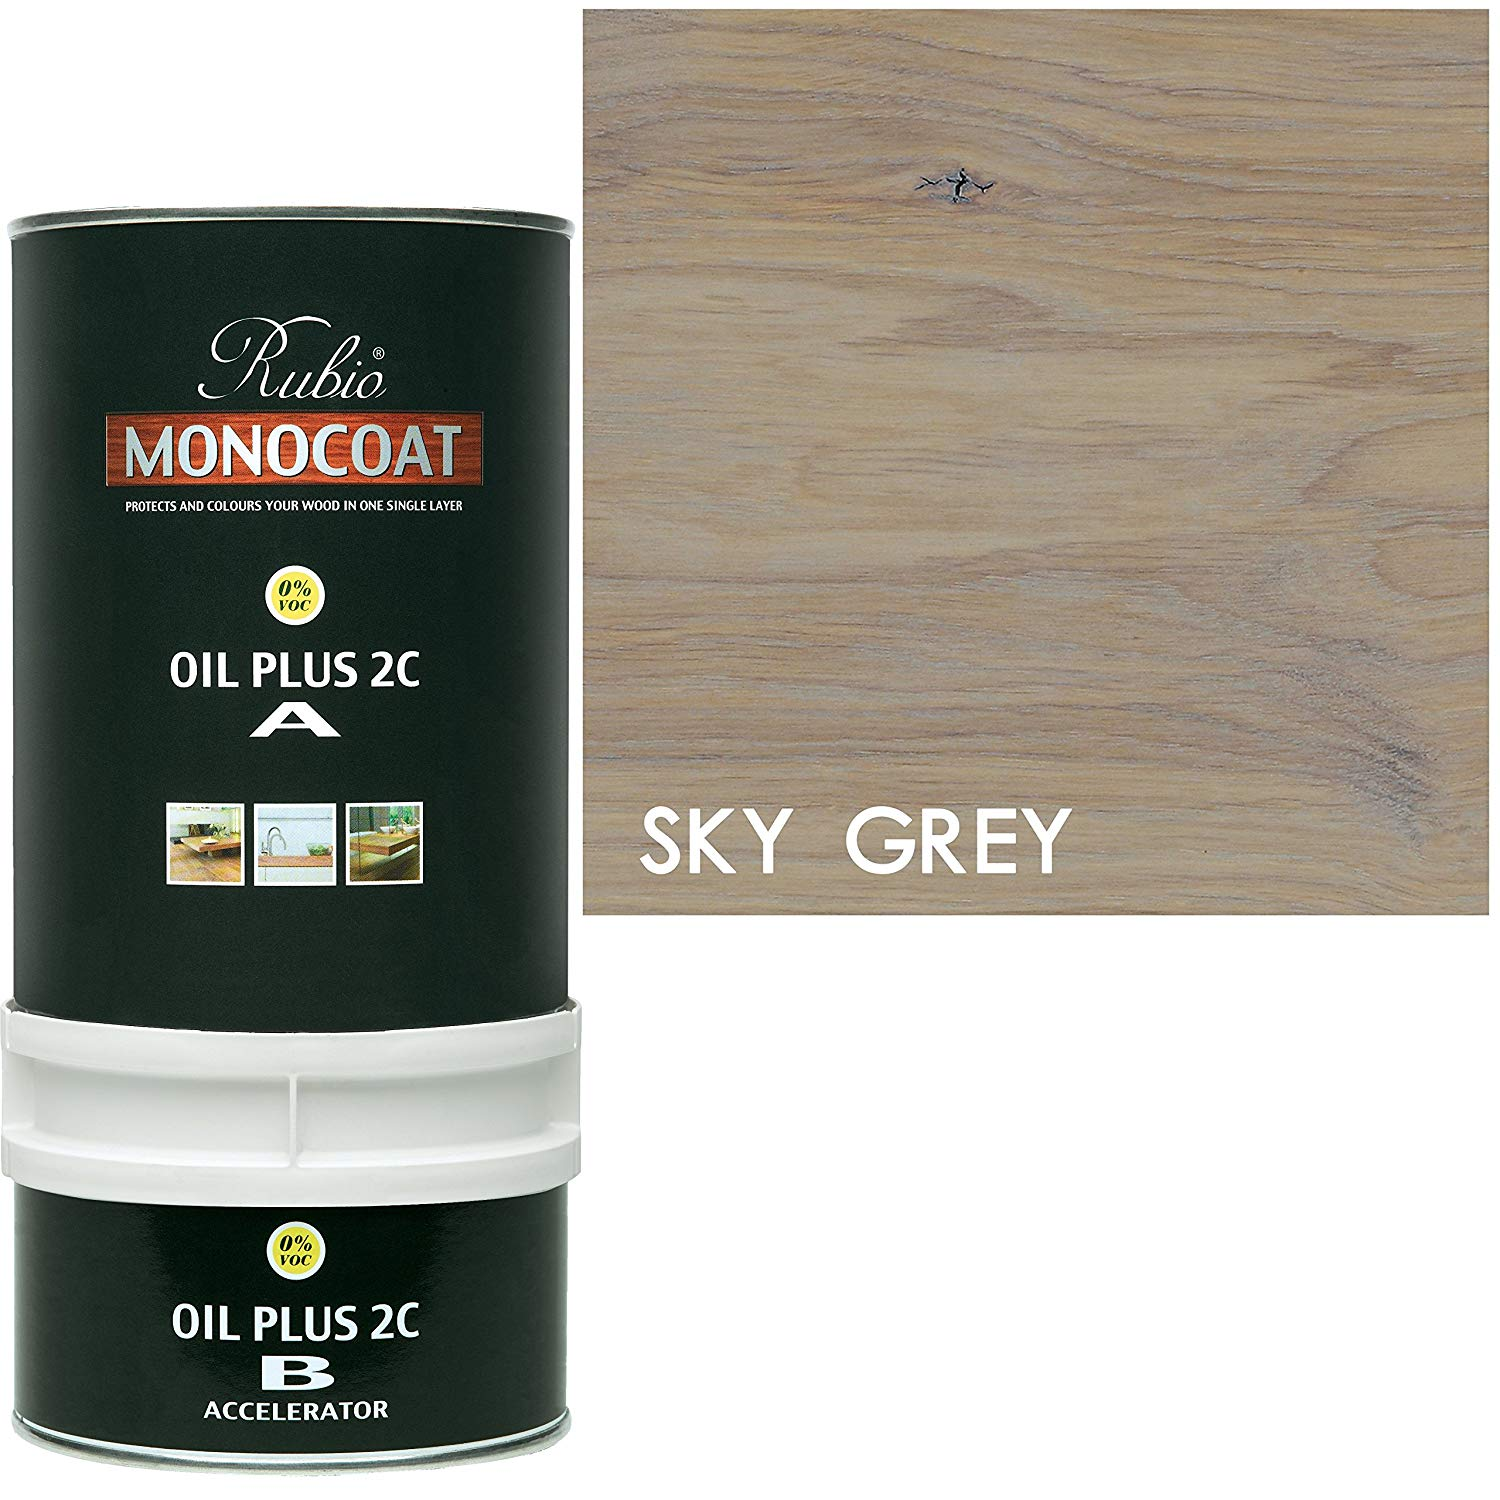 Rubio Monocoat Oil Plus 2C - Sky grey